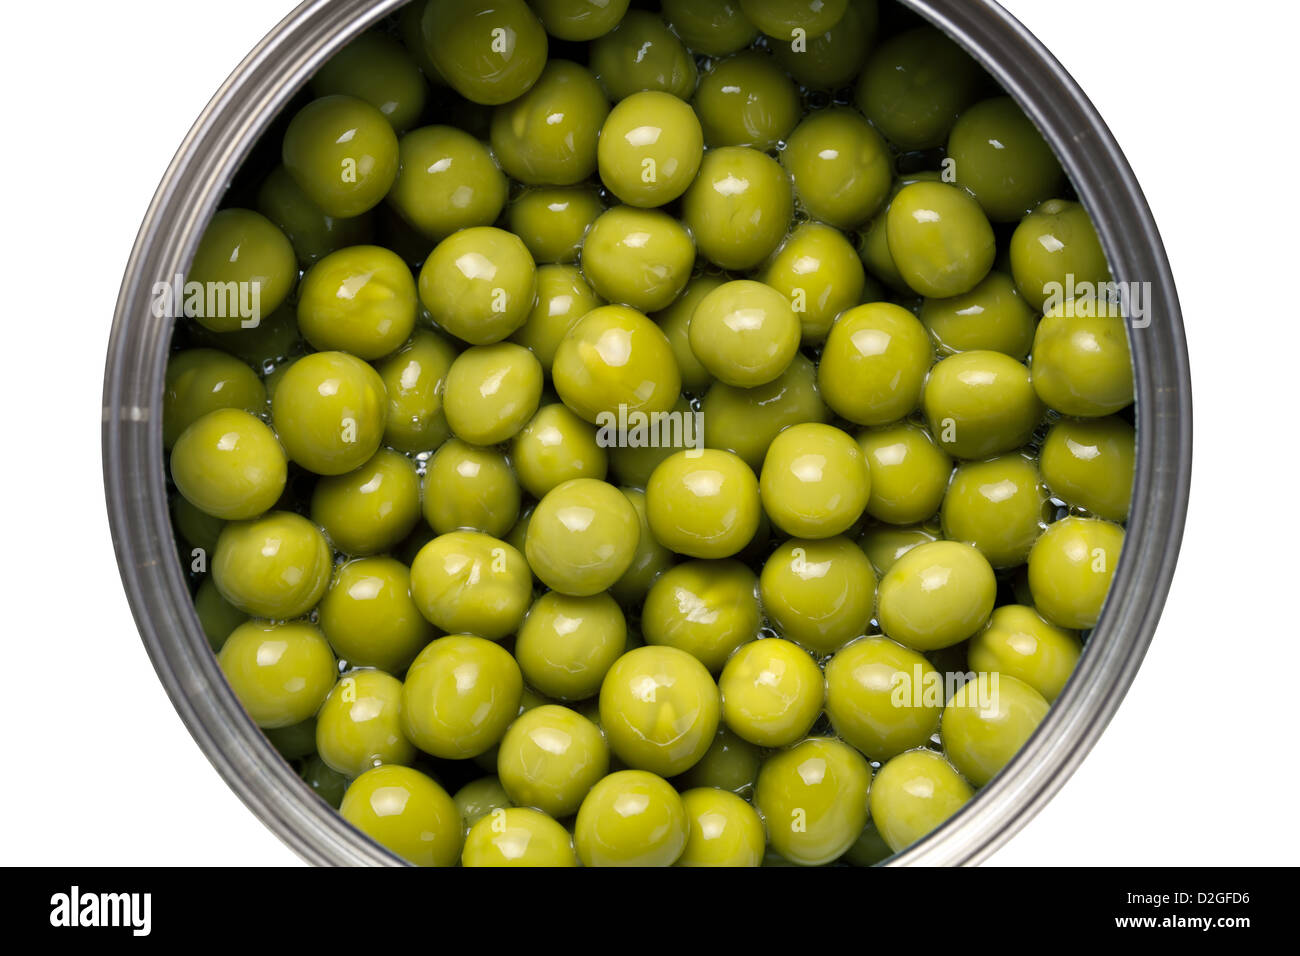 Canned green peas isolated on white background. Top view - Stock Image